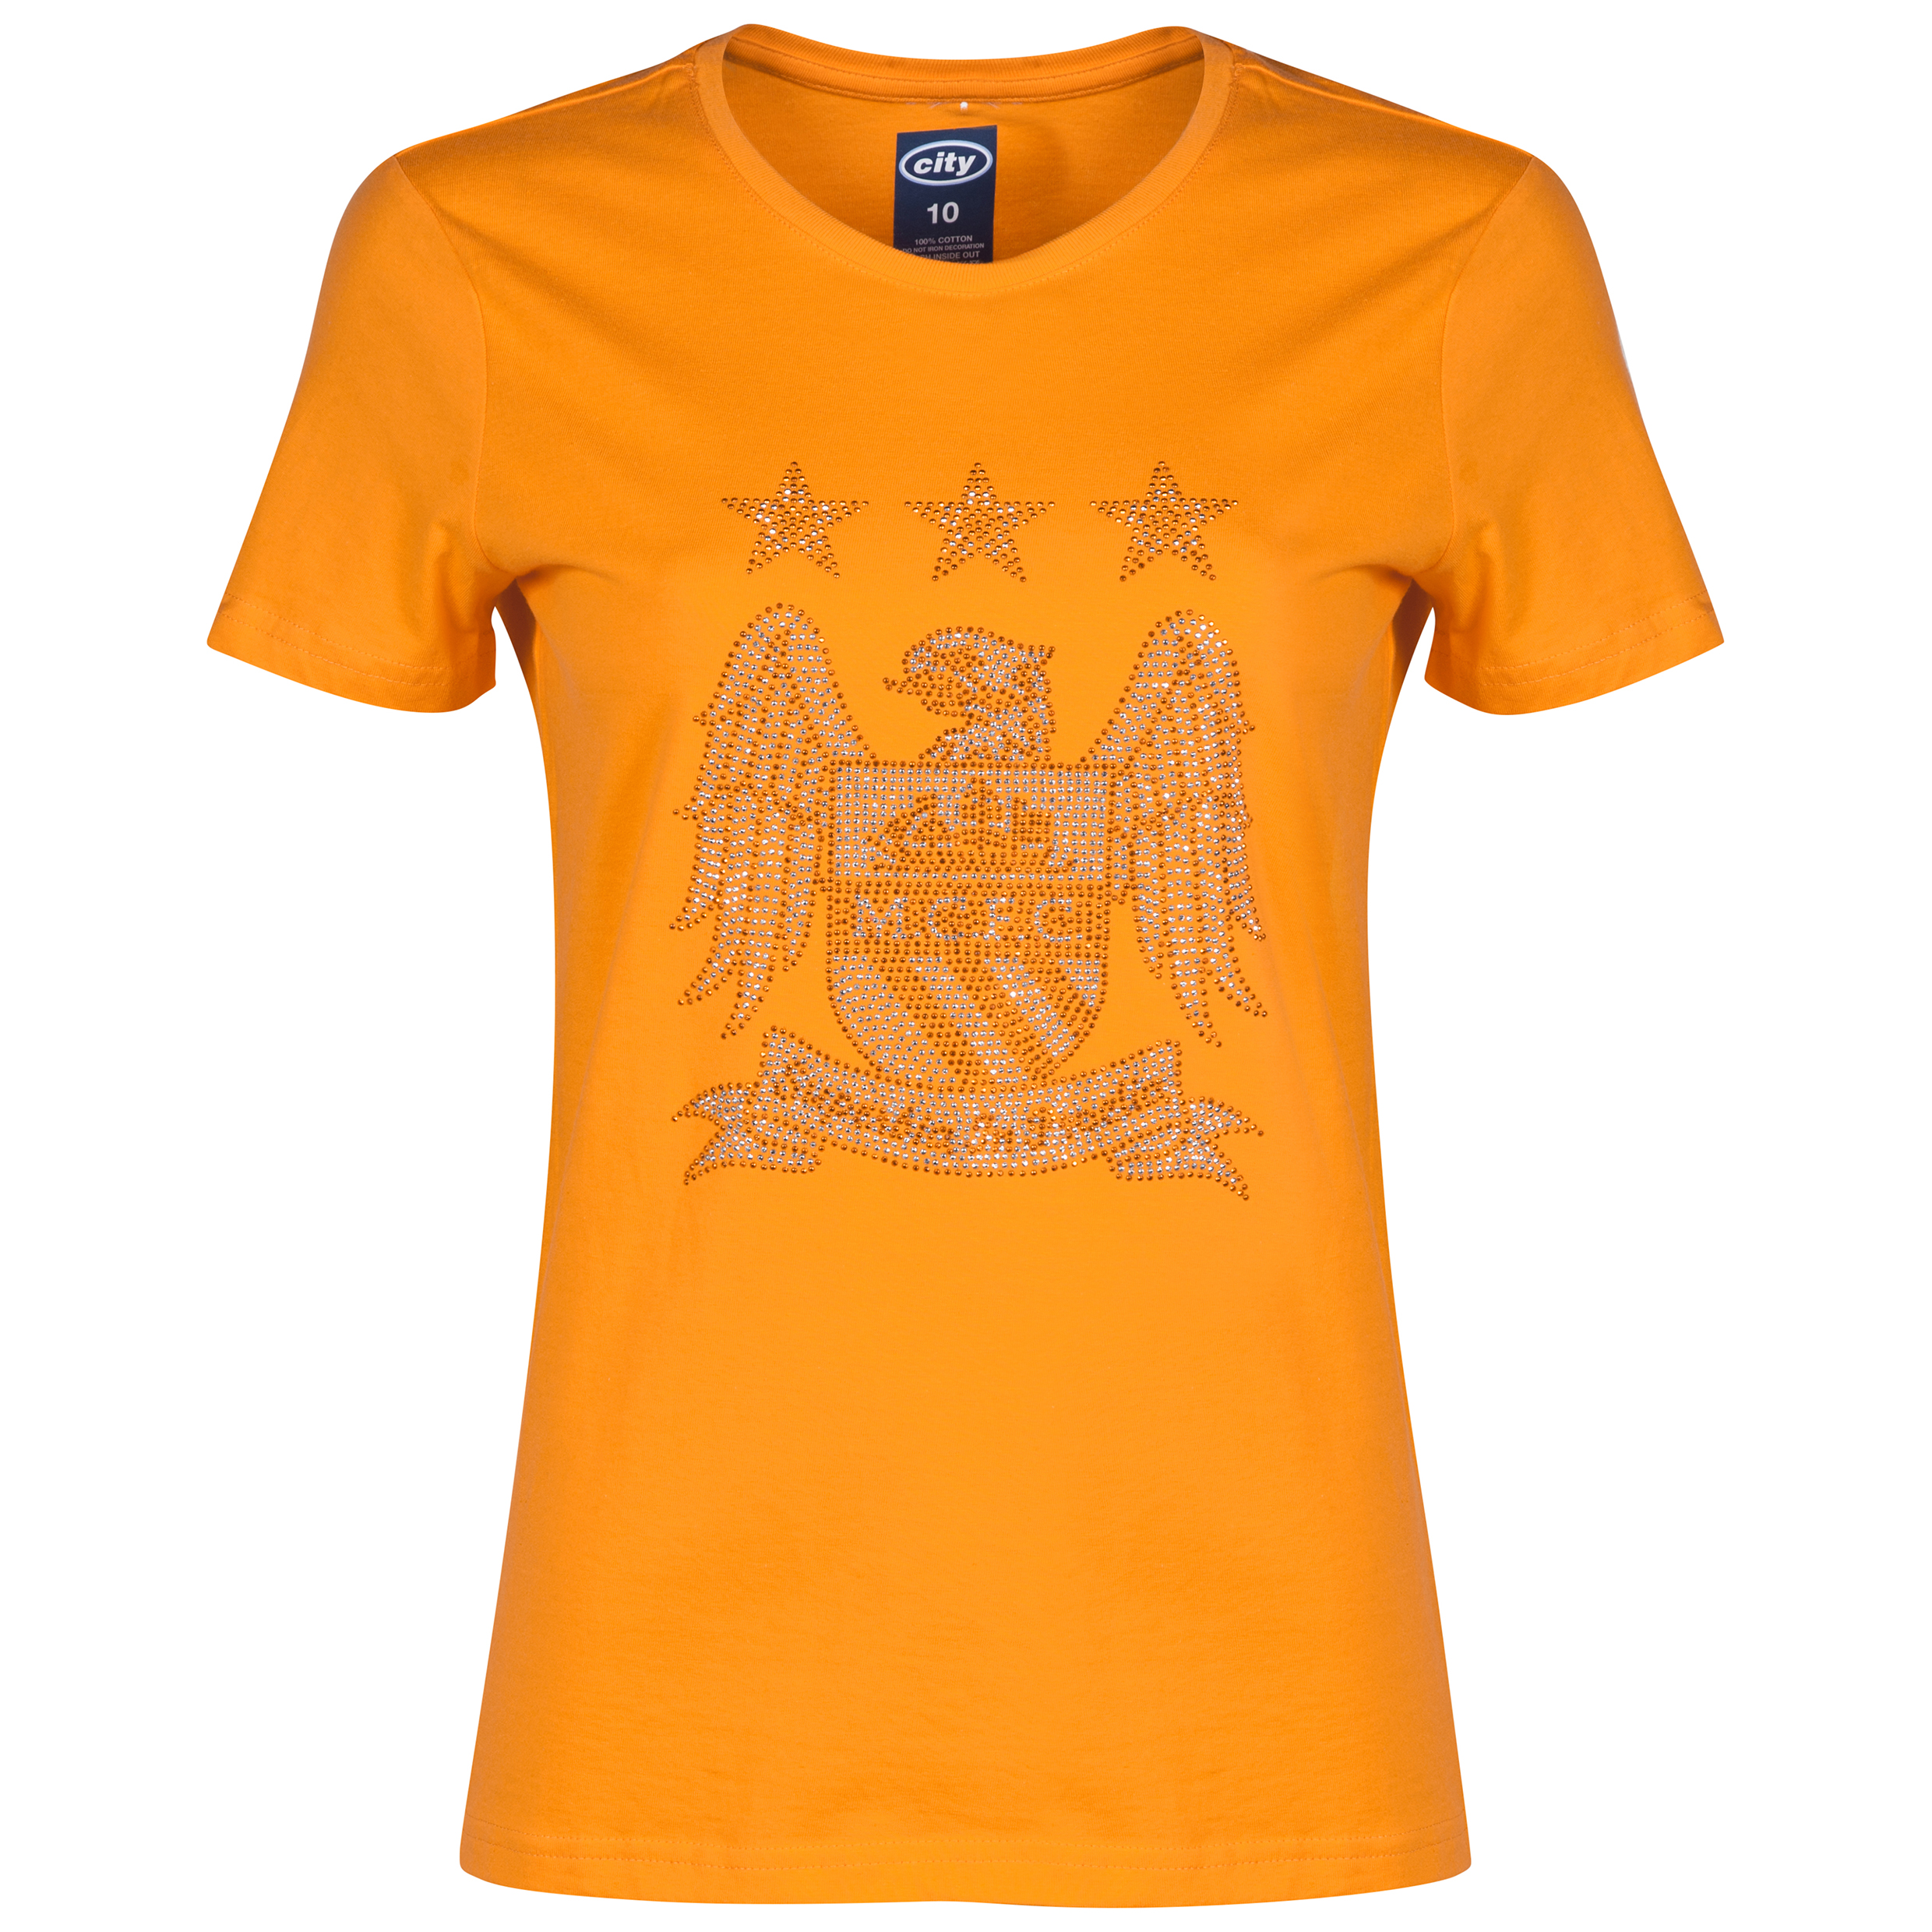 Manchester City Rhinestone T-Shirt - Orange - Womens